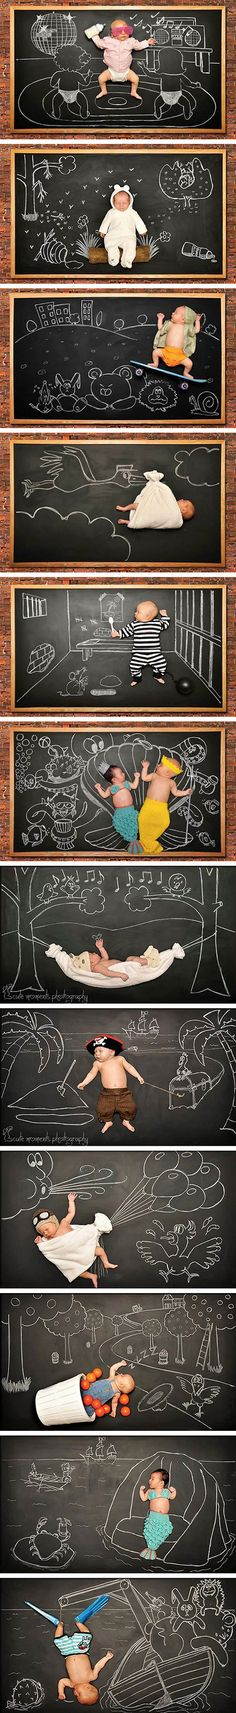 Chalkboard baby photos - I love this.so creative Newborn Pictures, Baby Pictures, Baby Kind, Baby Love, Baby Baby, Children Photography, Newborn Photography, Photography Tips, Cute Kids